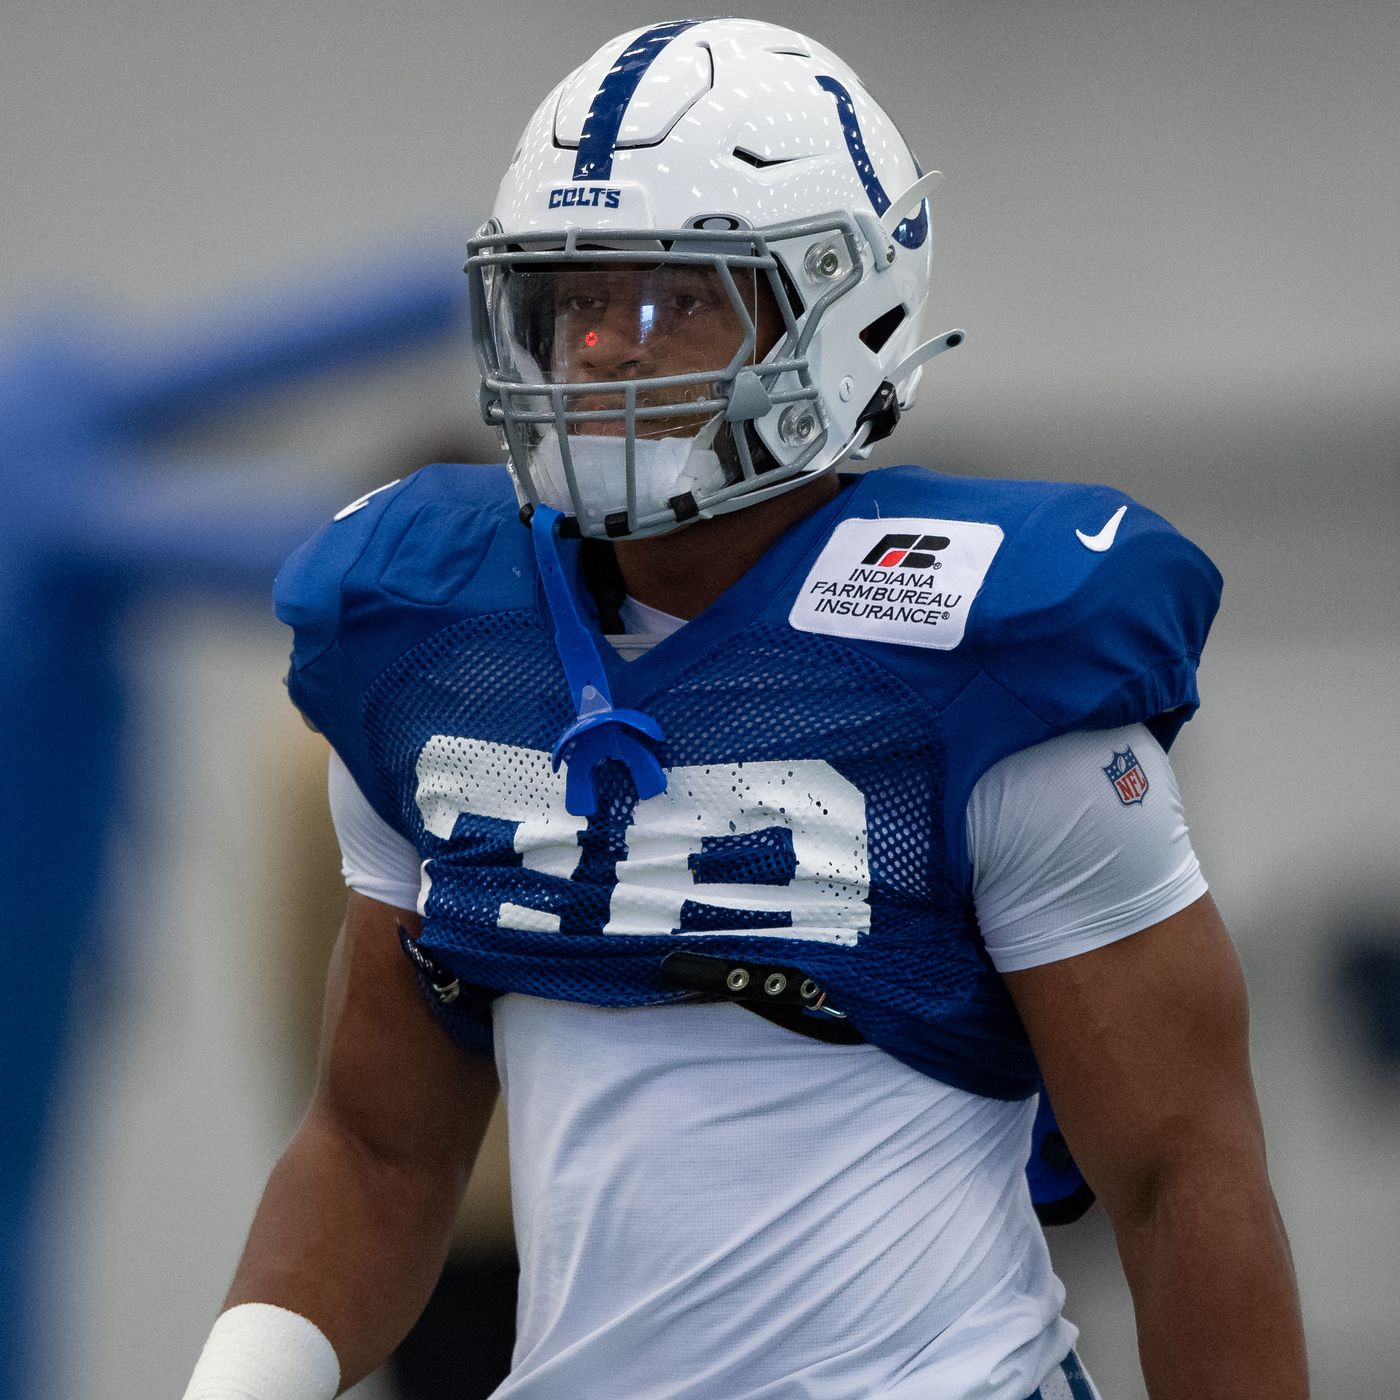 Best Rookies Nfl 2021 Todd McShay Lists Two Colts in his Ten Rookies Most Likely to Make